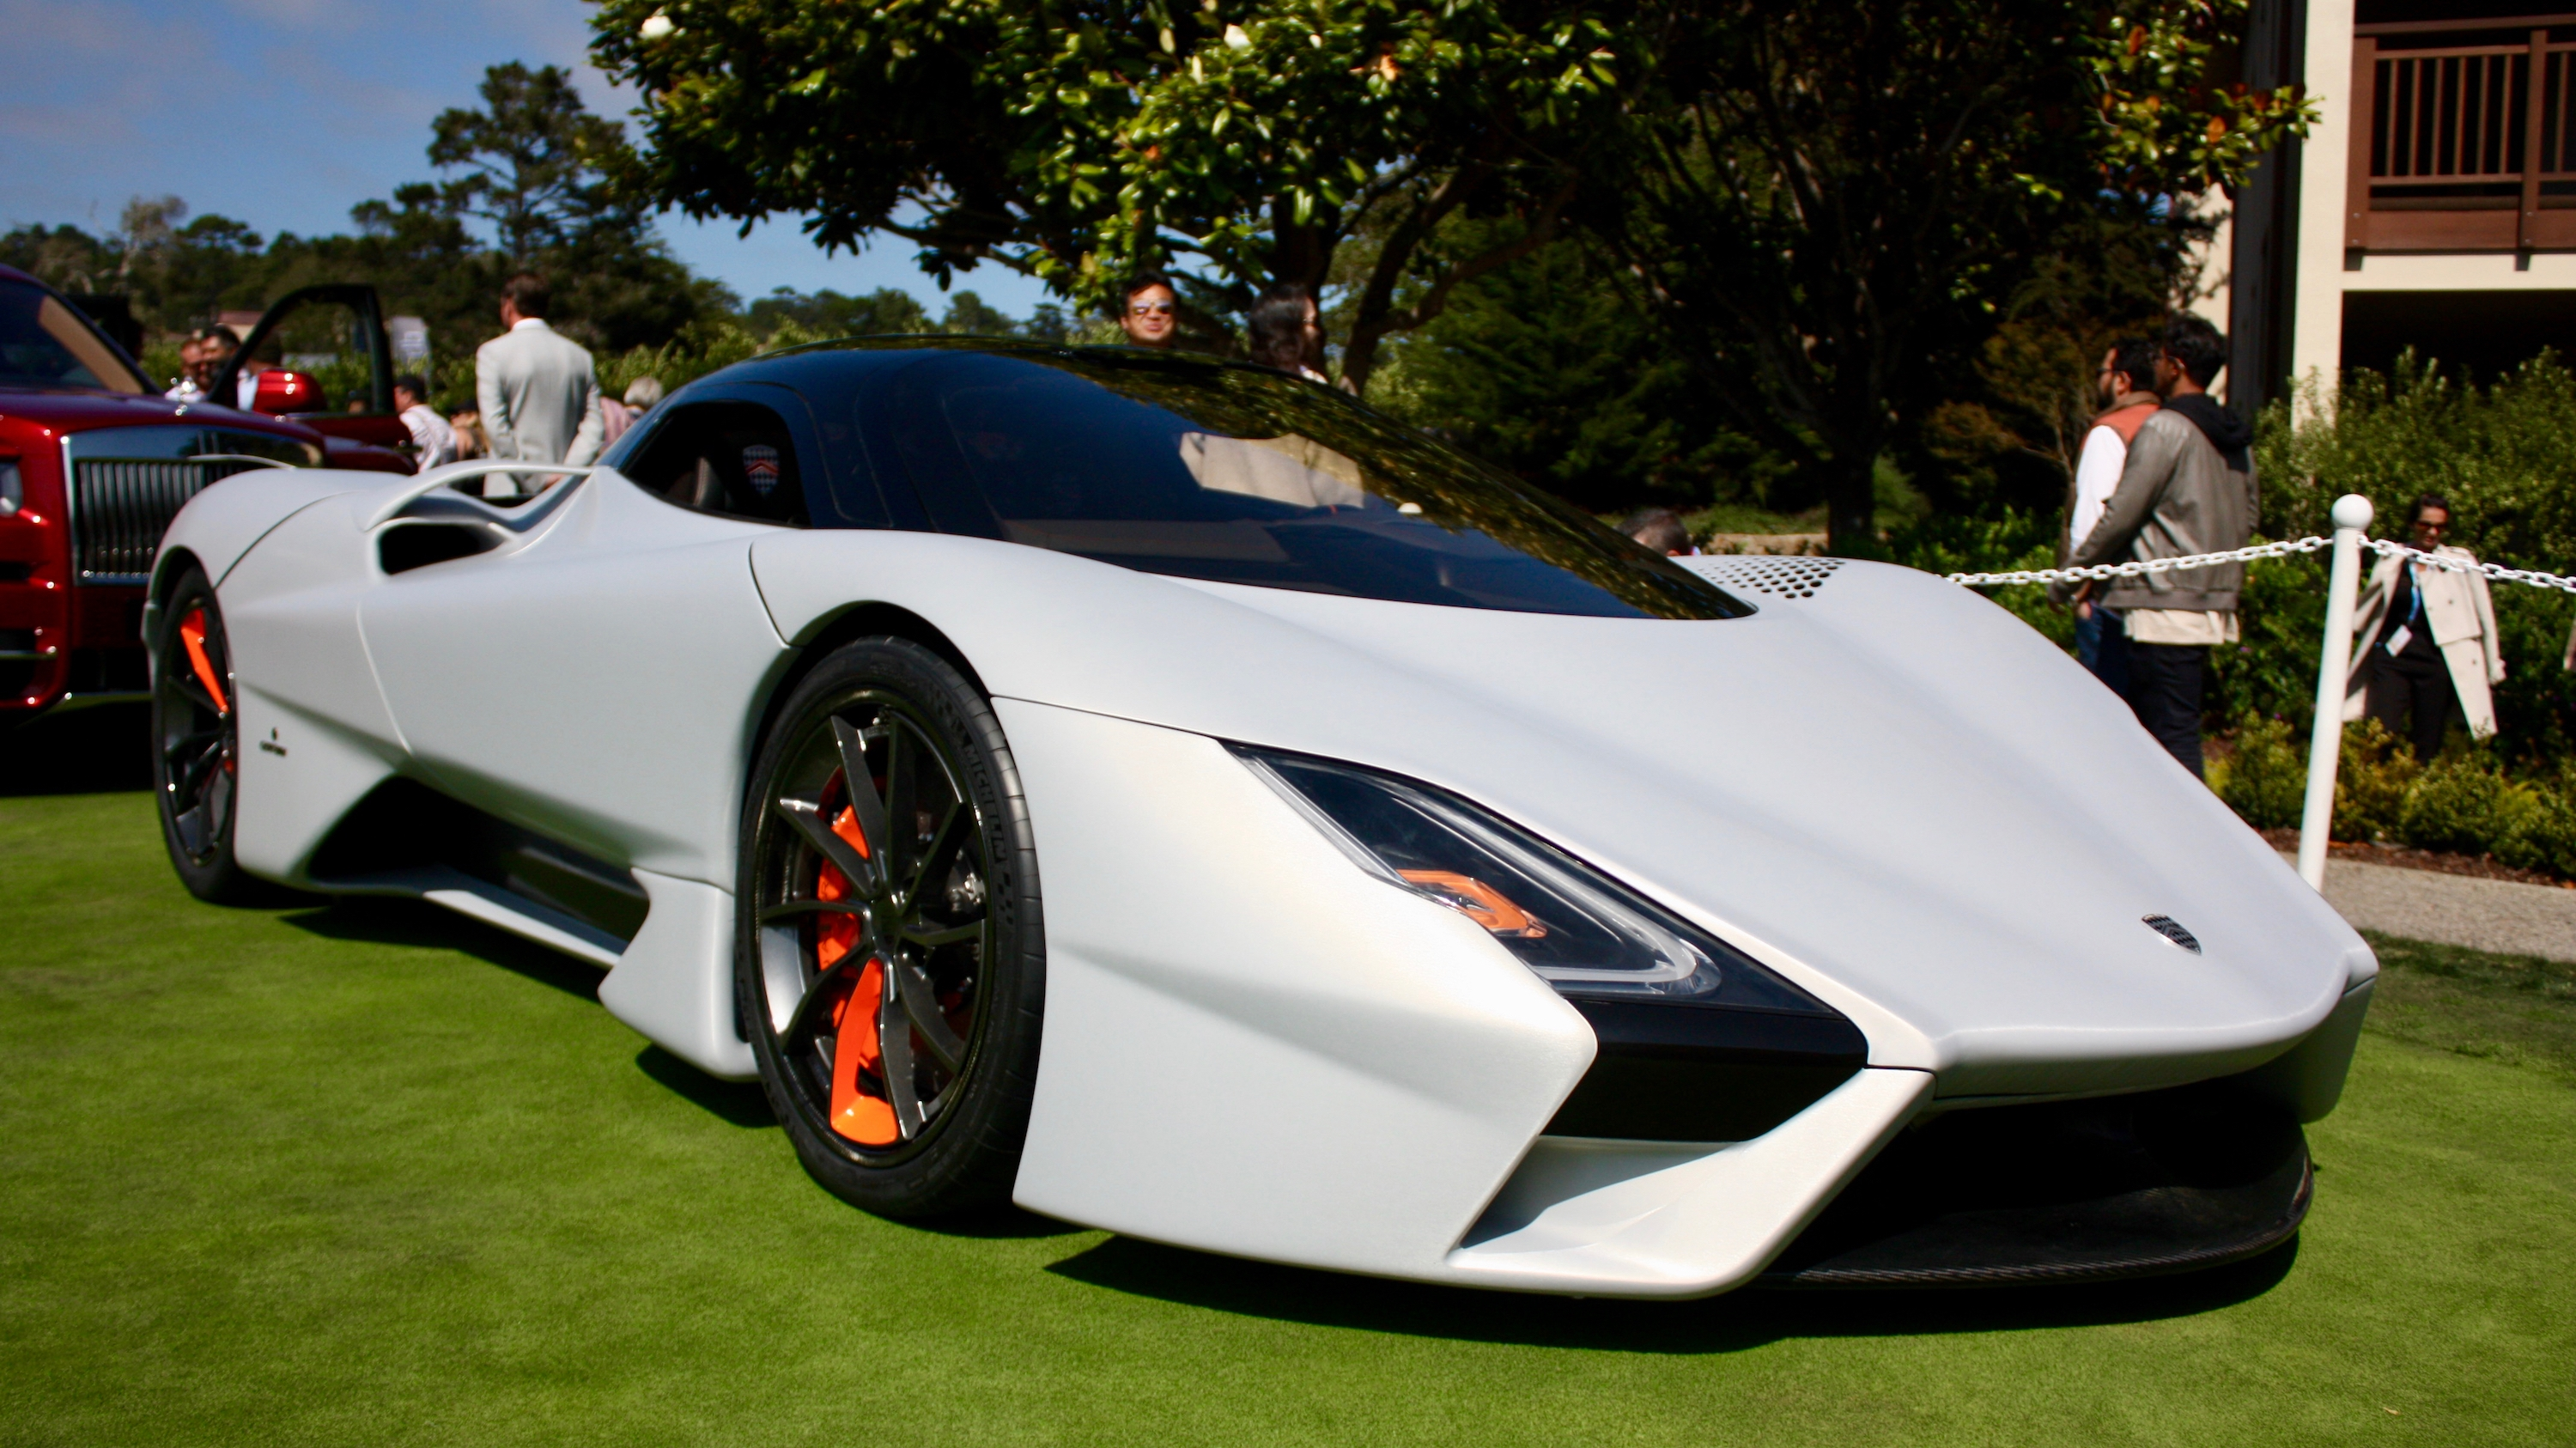 Concours D Elegance >> The SSC Tuatara Is A 1,750-Horsepower Beast With An Eye On 300 MPH And A Thirst For E85 | Top Speed